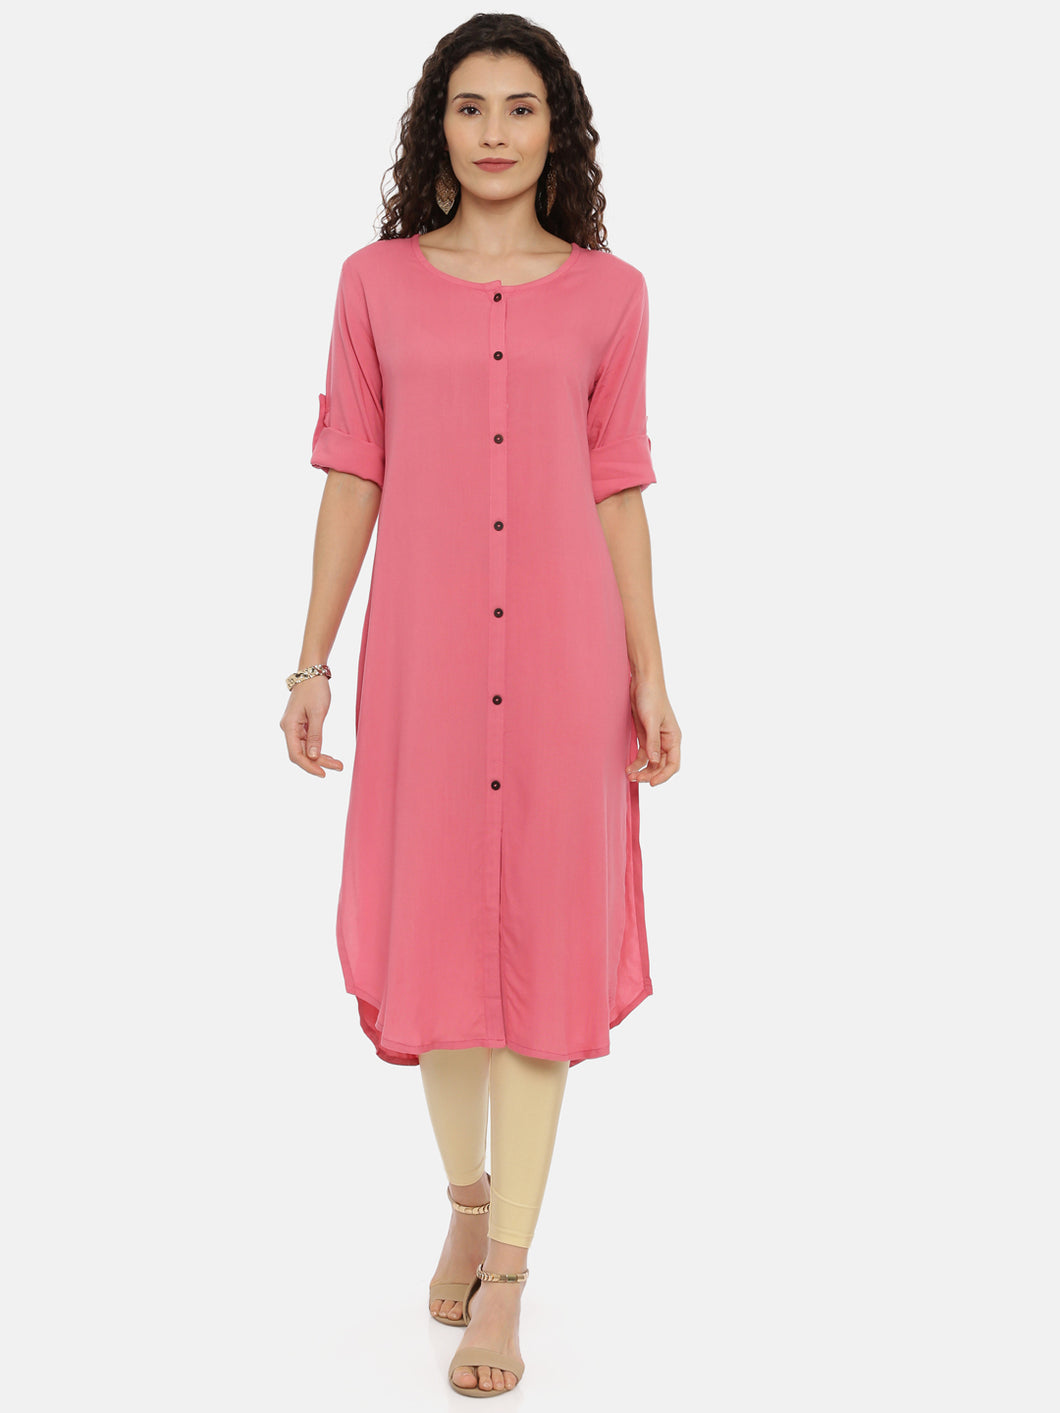 Arana Women's Plain Rayon Front Full Button Straight Cut Pink Colour Kurti With Roll Up Sleeve